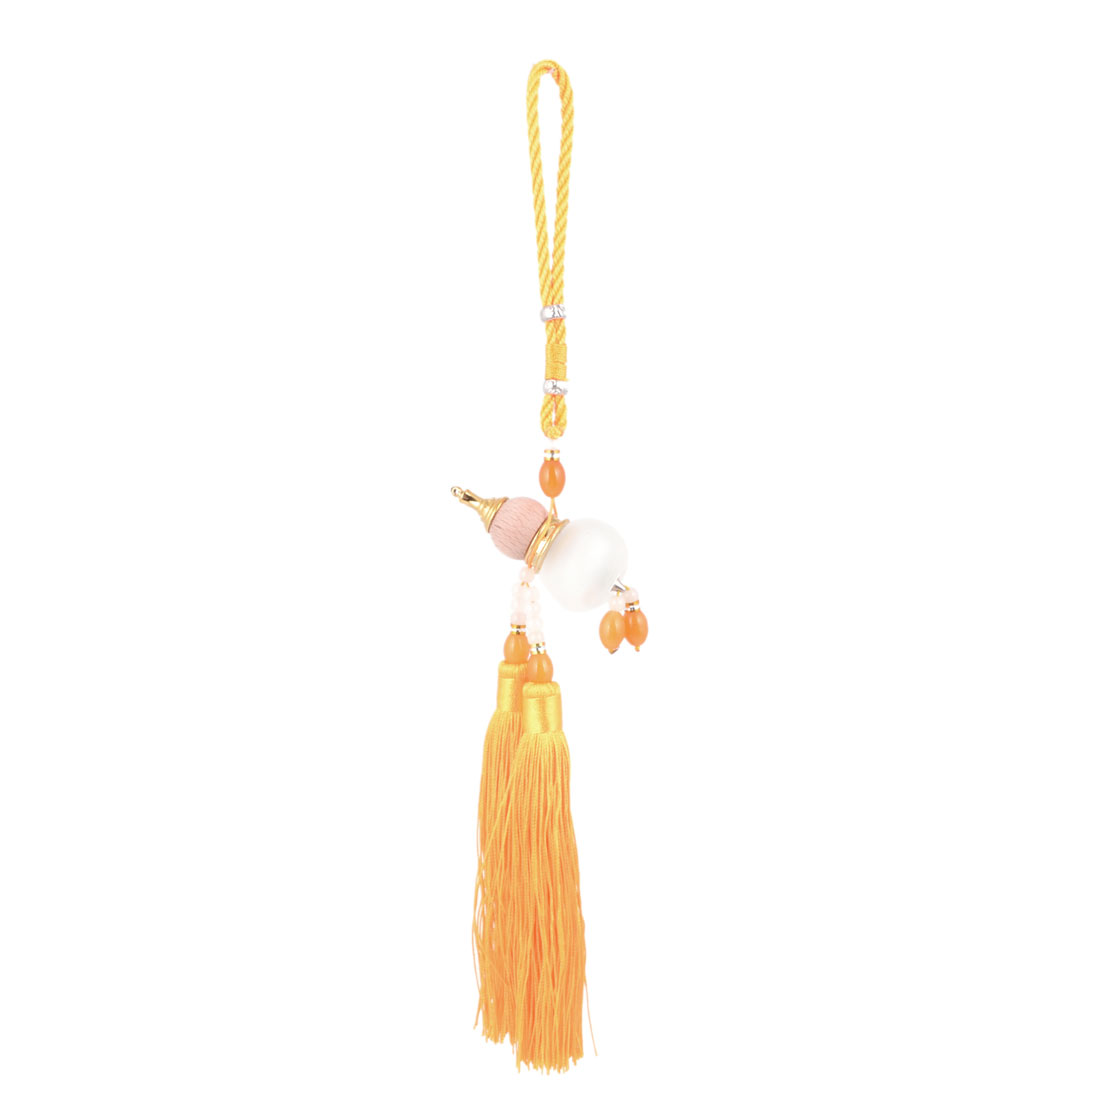 Pendant Tassels Yellow Beads Detail Perfume Bottle Wooden Calabash Car Hanging Decor